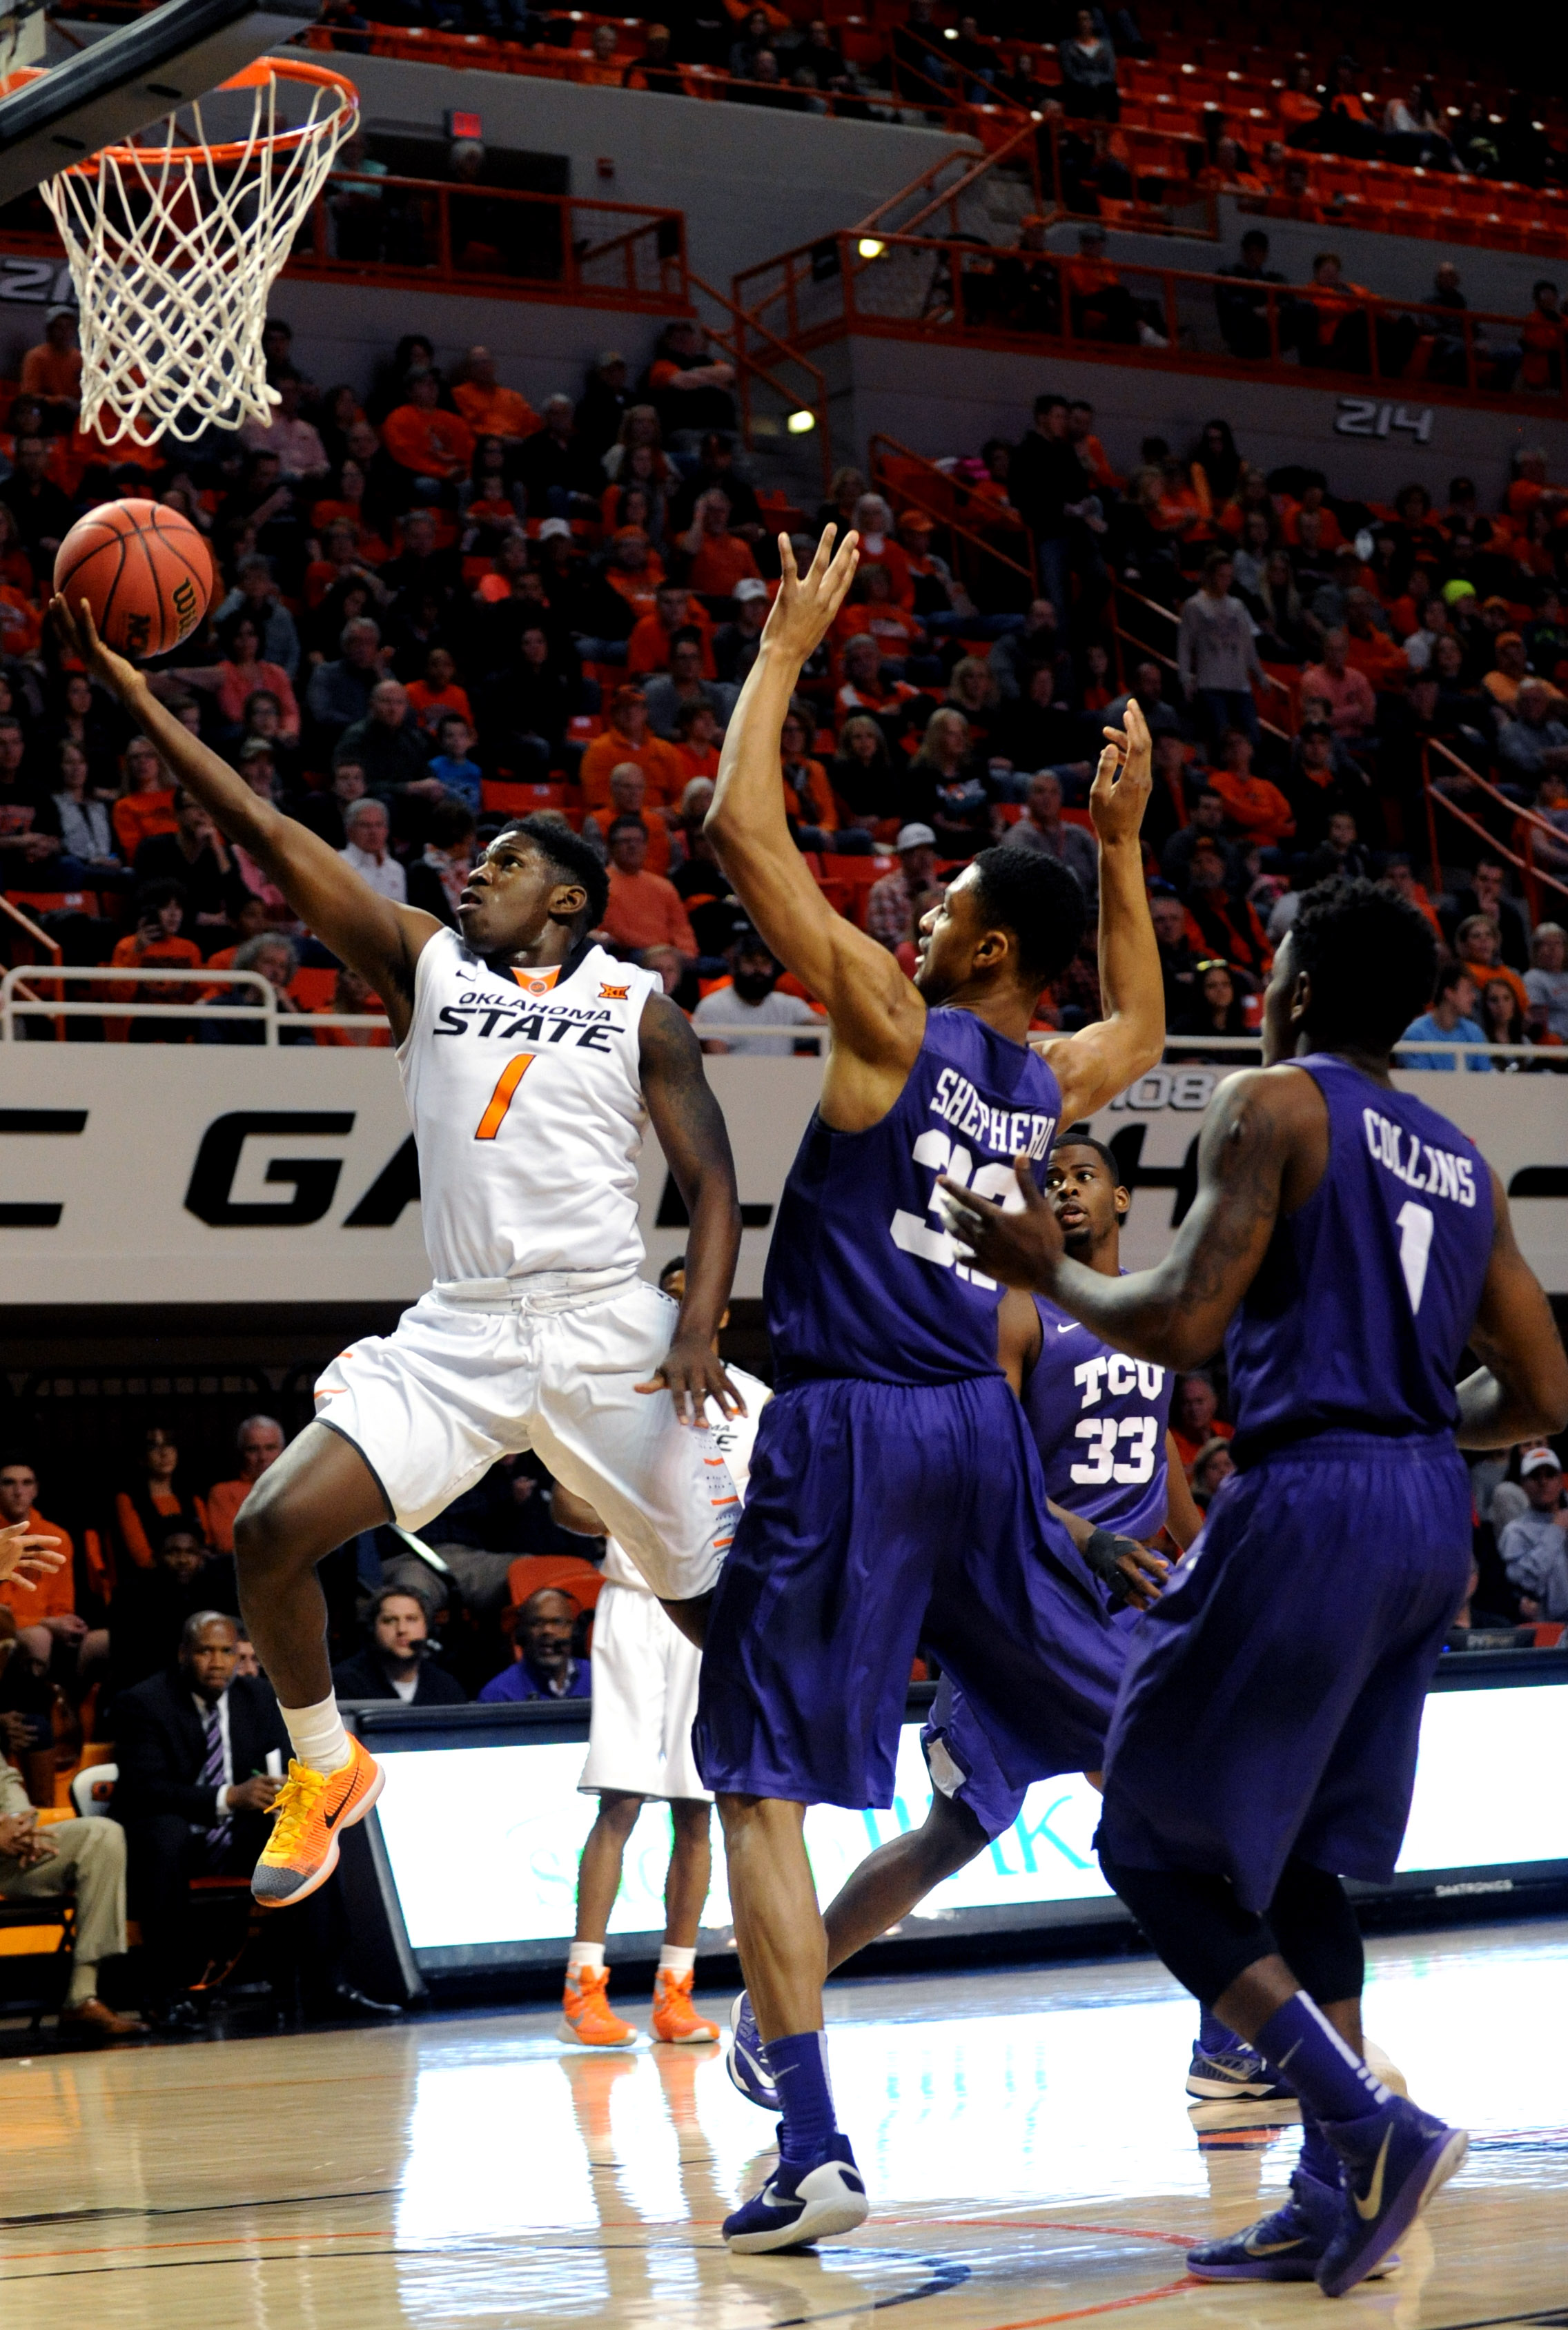 TCU's Karviar Shepherd (32), Chris Washburn (33), and Chauncey Collins (1) watch as Oklahoma State Jawun Evans (1) scores in the first half of an NCAA college basketball game in Stillwater, Okla., Saturday, Jan. 2, 2016. Evans scored a total of 13 points